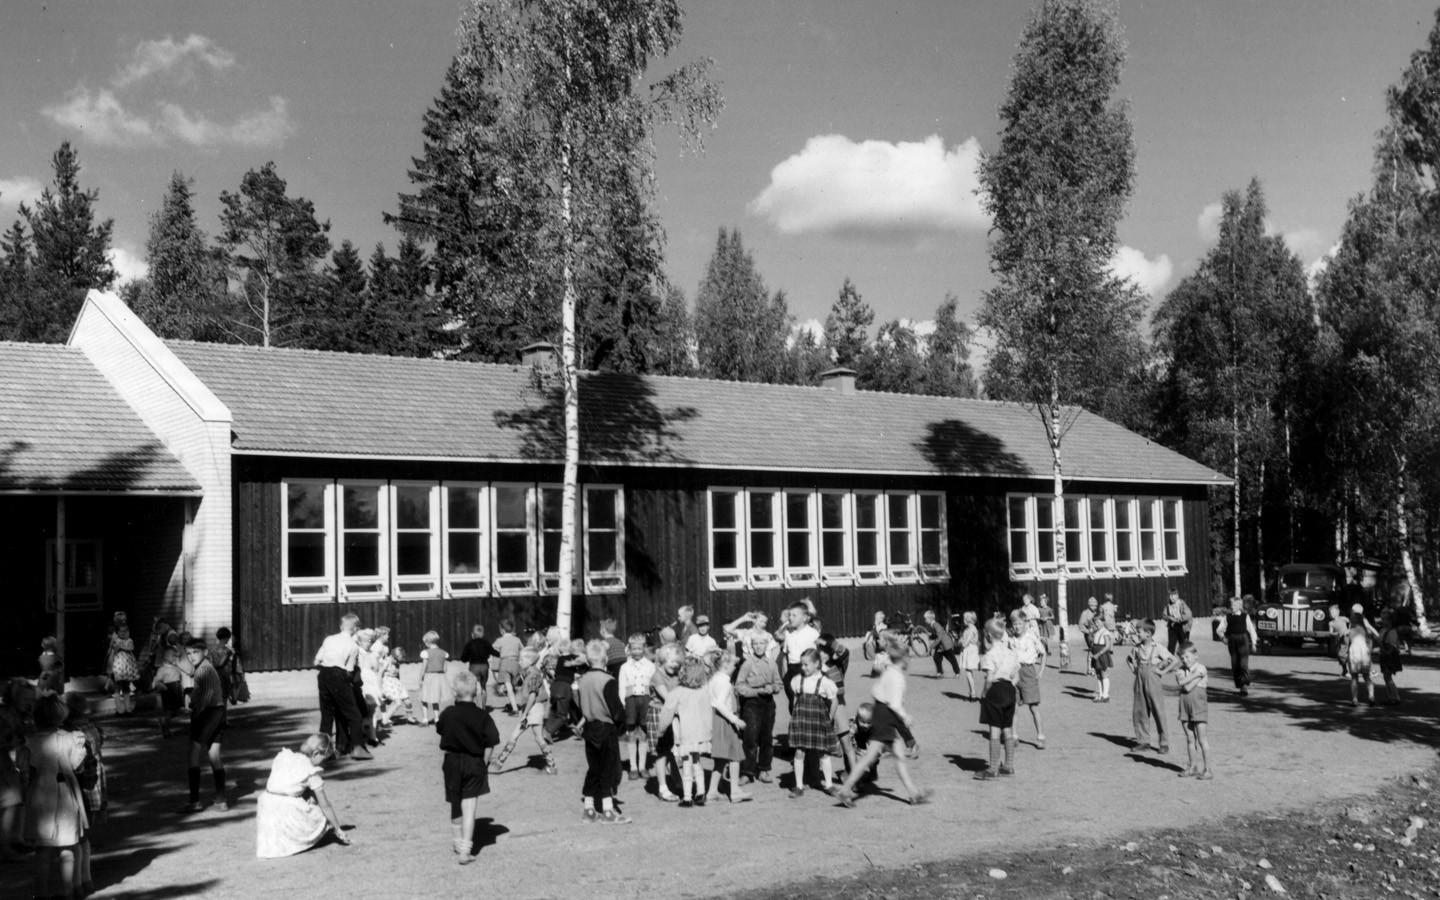 An old black and white picture of a wooden school where there are children playing in the yard.